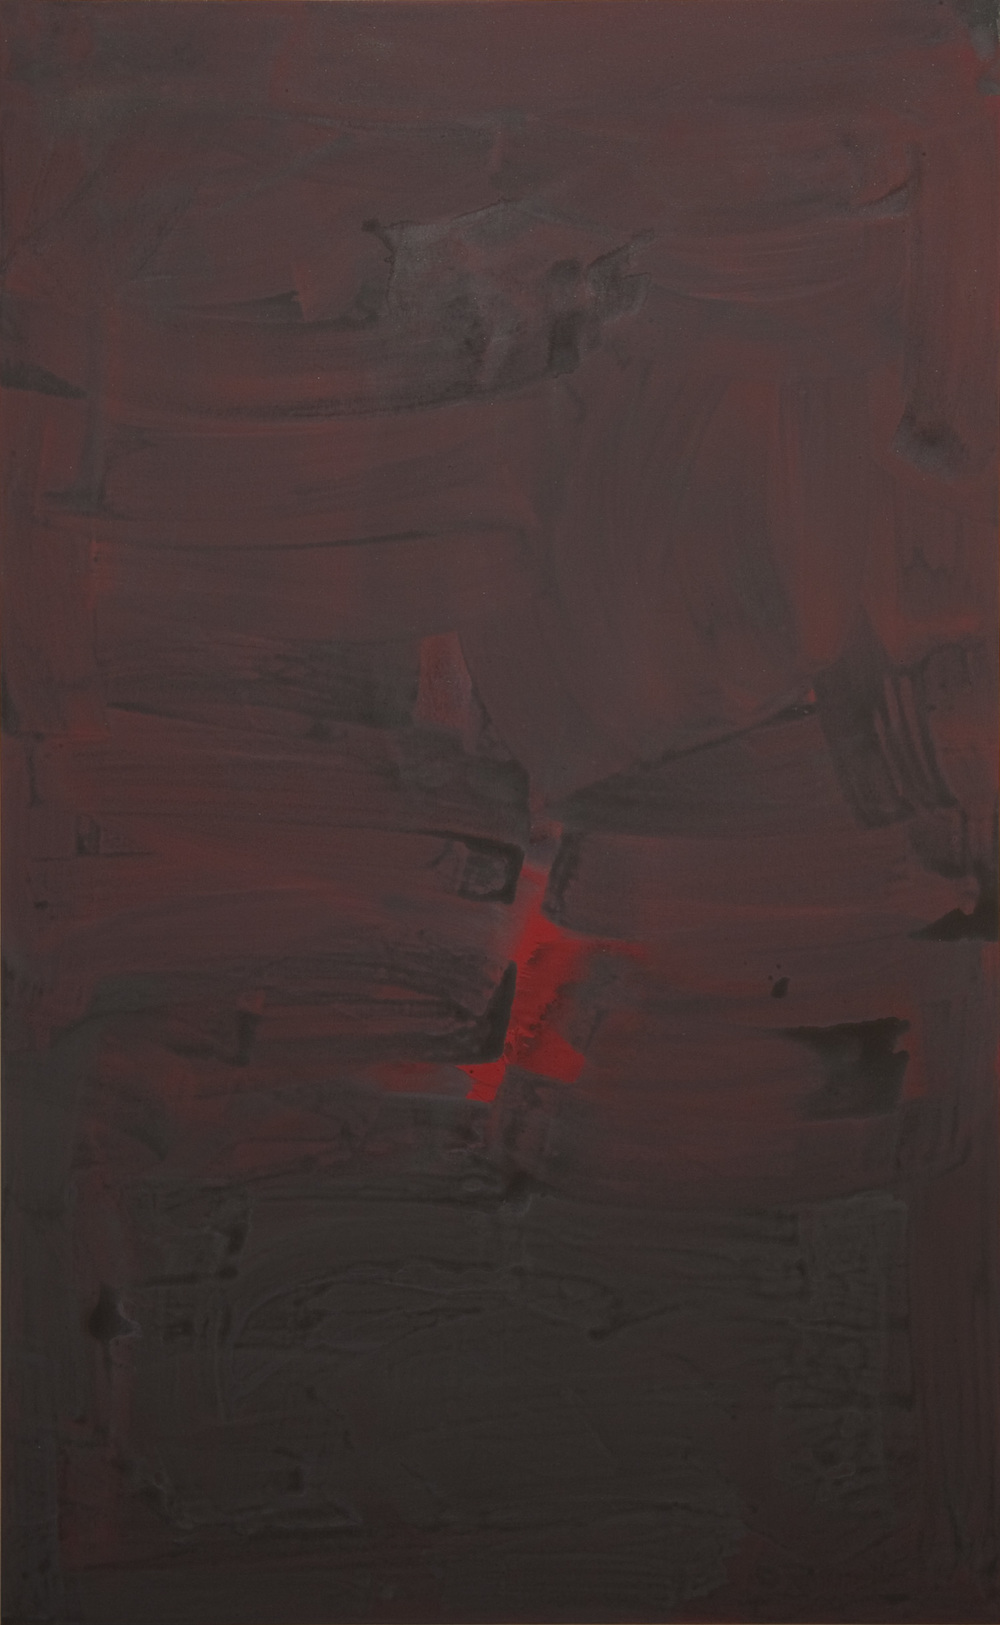 2012, acrylic on canvas, 150 x 242.5 cm (59 x 95 1/2 in)